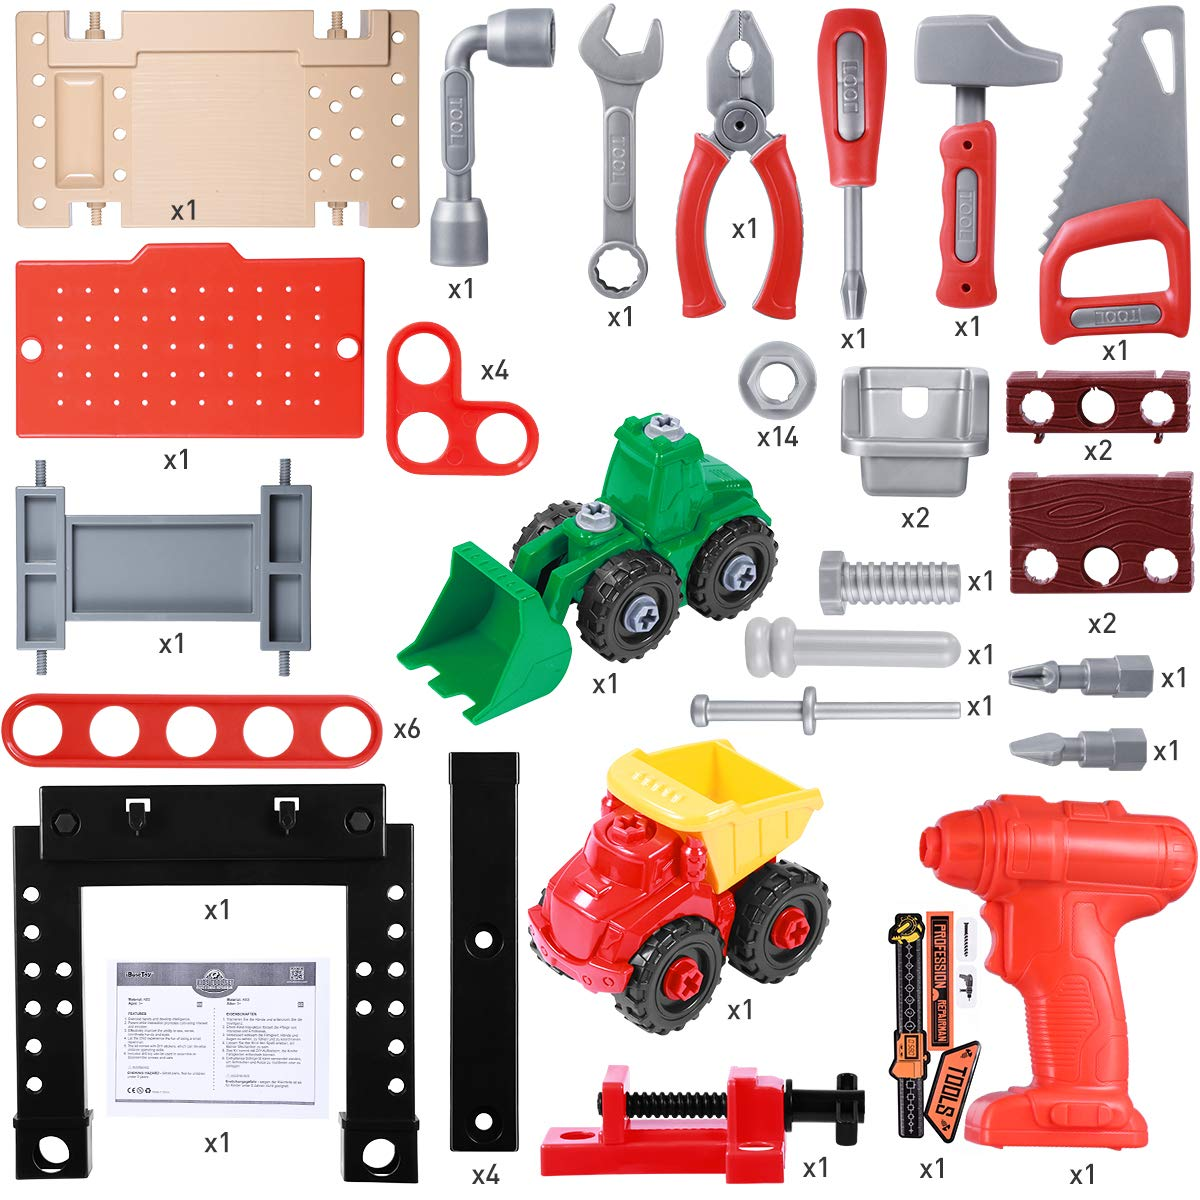 iBaseToy Toy Tool Bench, Kids Power Workbench, 91Piece Construction Toy Bench Set with Electric Drill, Educational Play & Pretend Play Workbench for Toddlers by iBaseToy (Image #2)